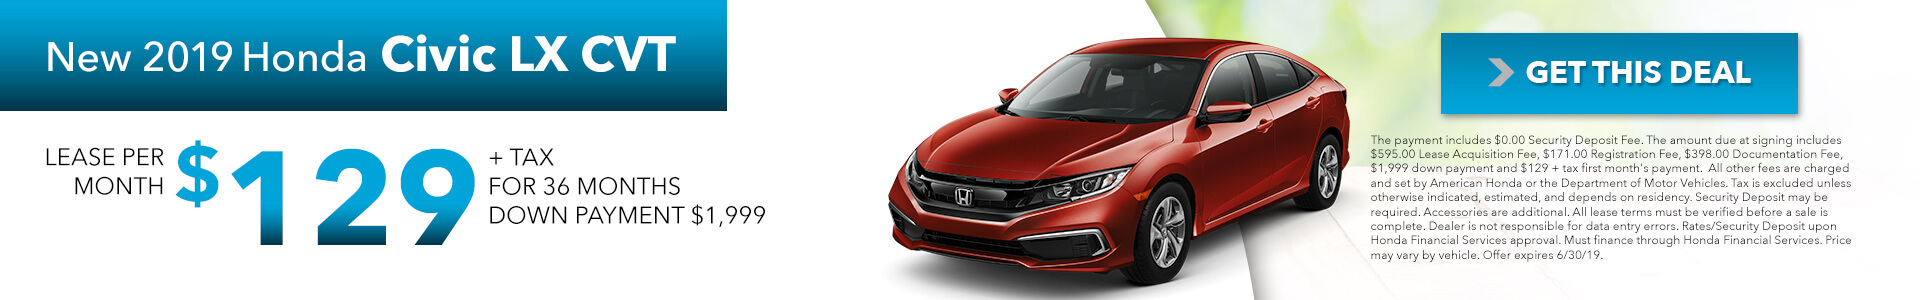 2019 Honda Civic 129 Per Month